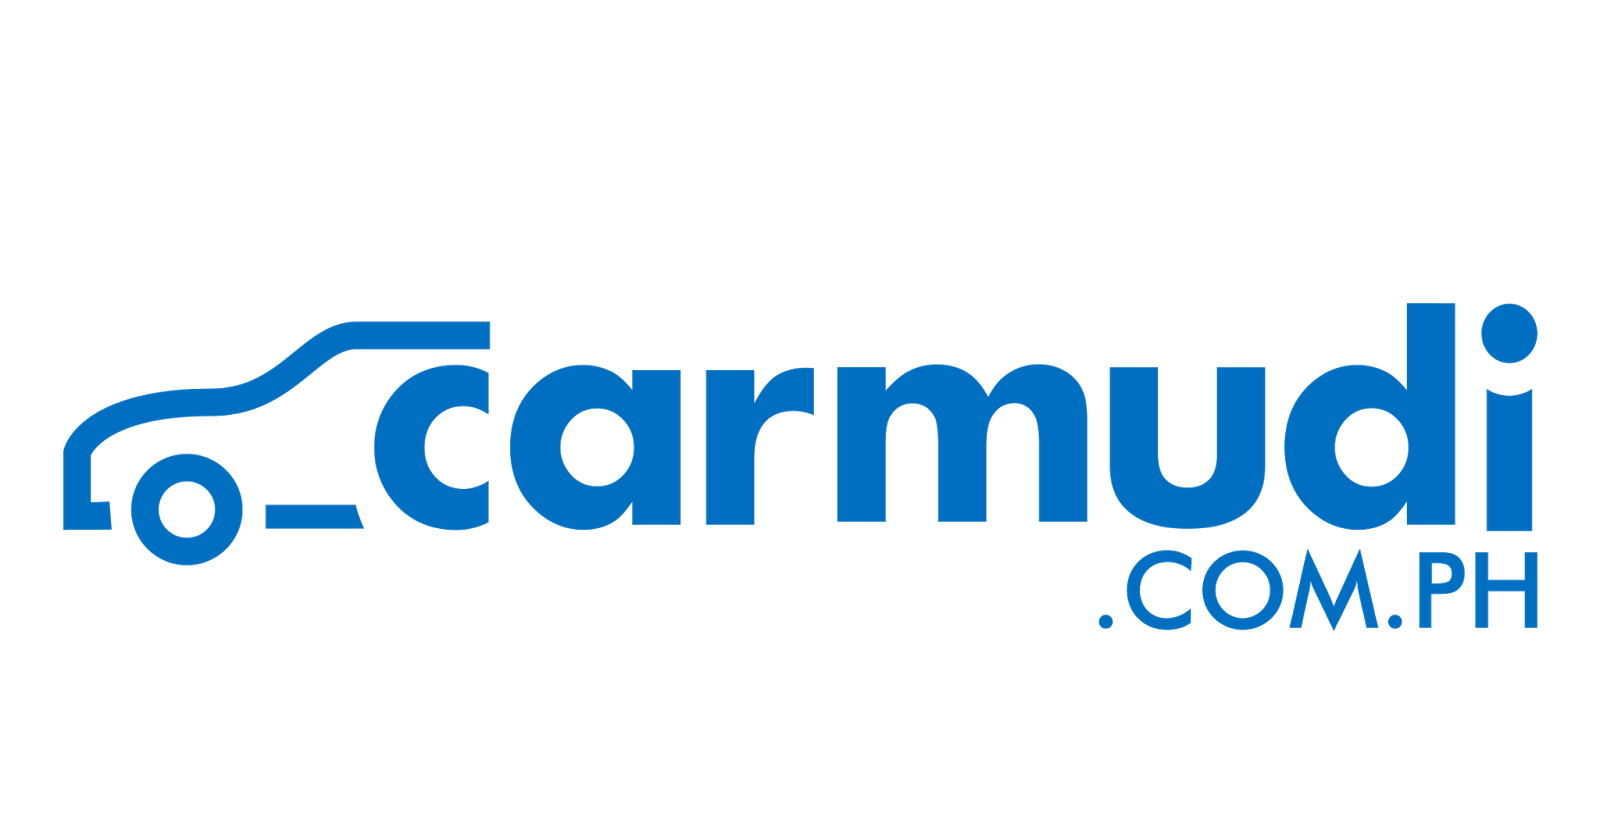 Carmudi Research Shows Carbuyers Now Turn To Online Tools Gadgets Magazine Philippines